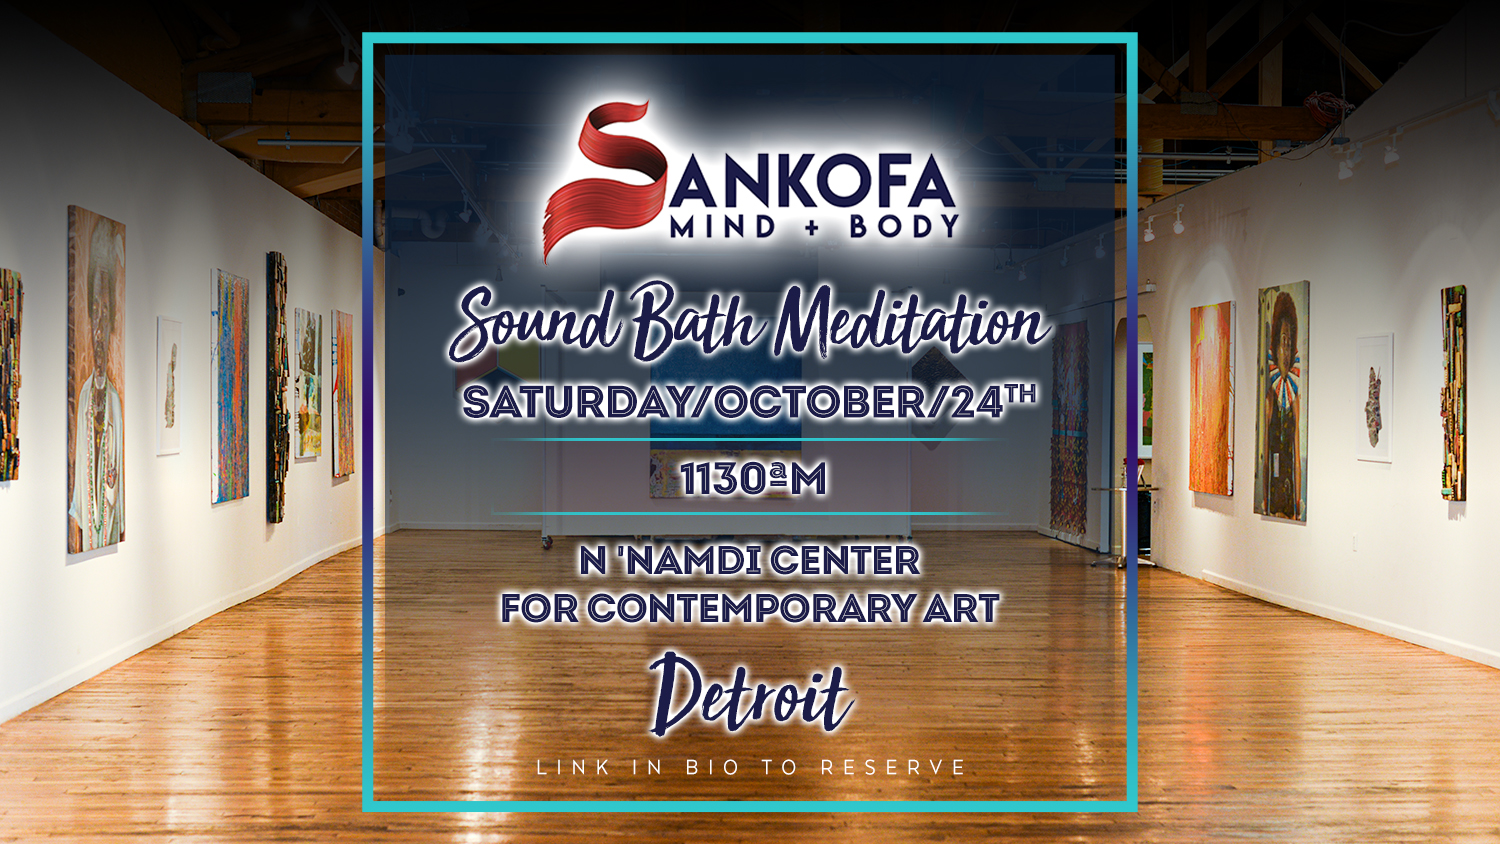 N'Namdi Center for Contemporary Art Saturday Sound Meditation